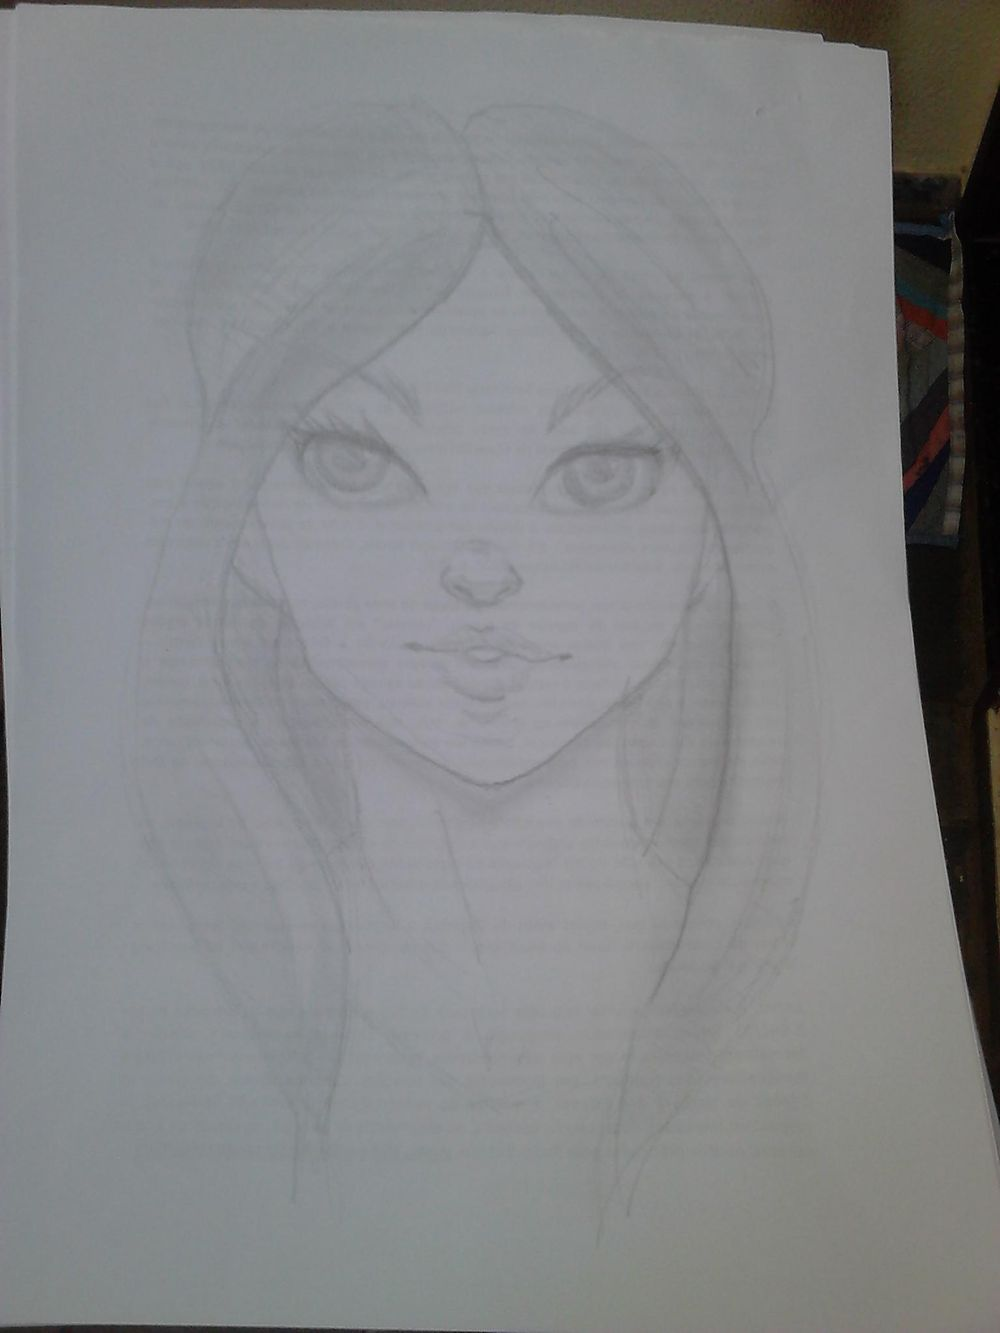 Some female character - image 4 - student project